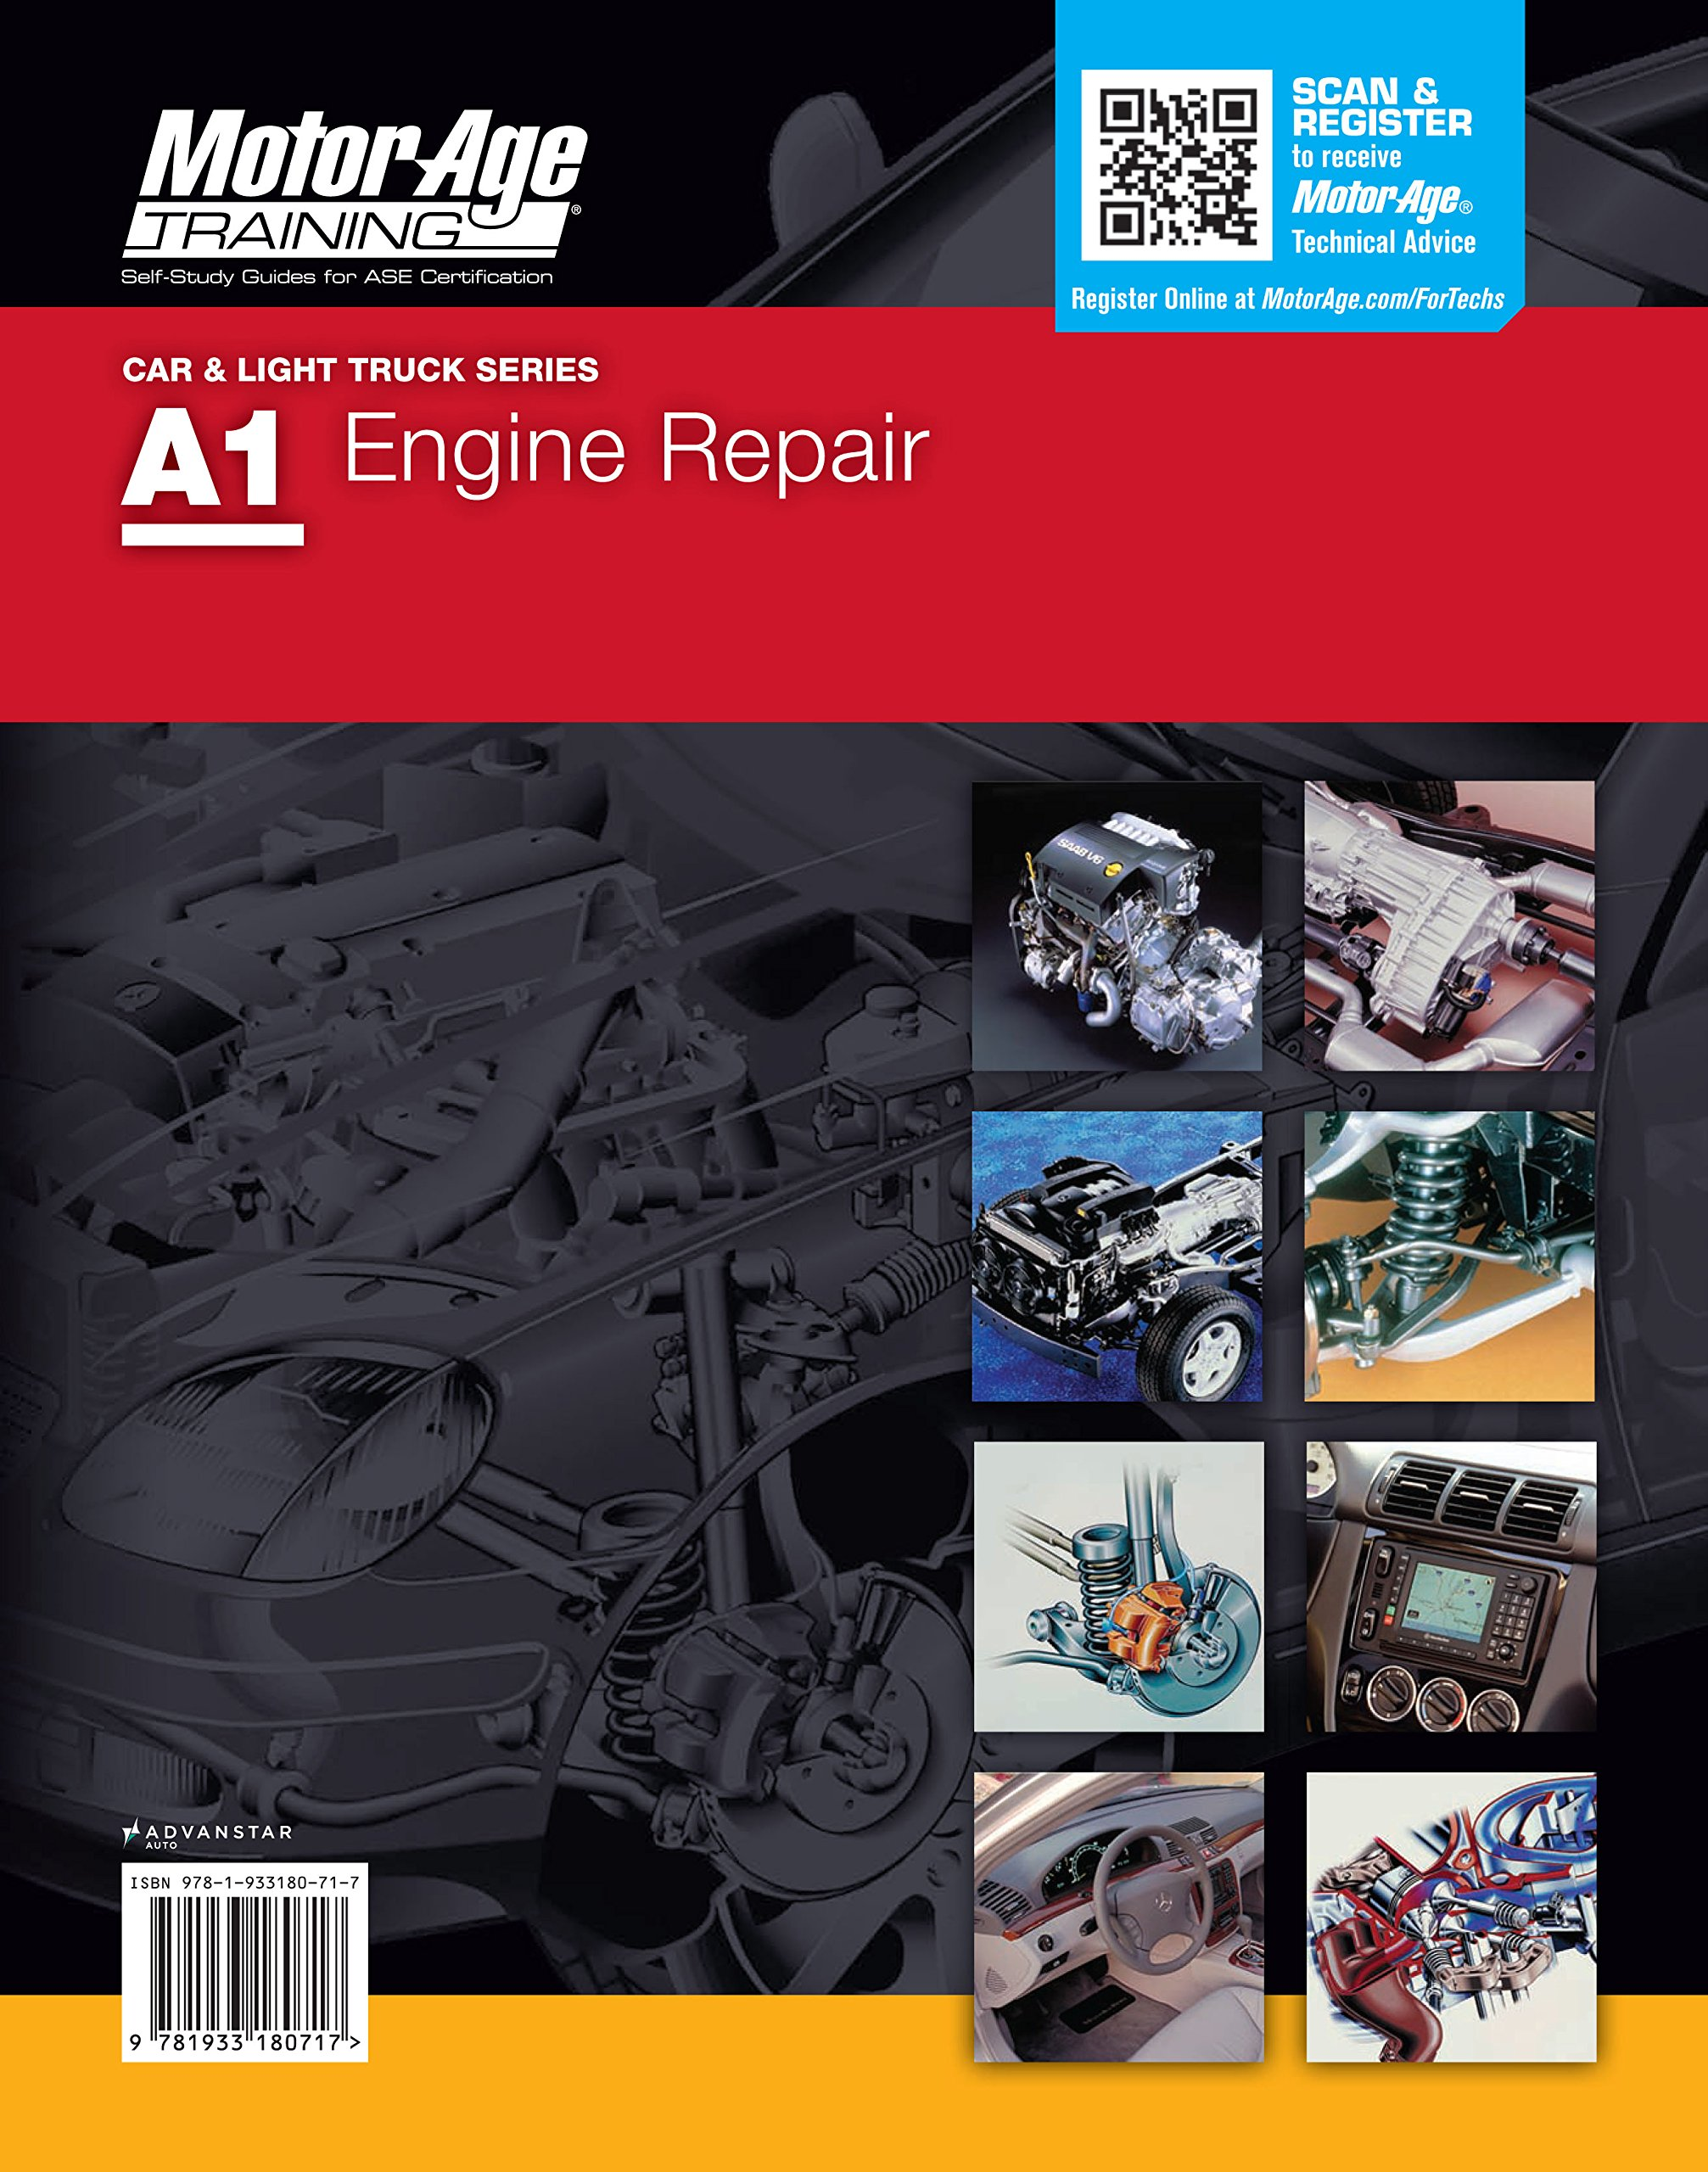 A1 automotive engine repair motor age training self study guide a1 automotive engine repair motor age training self study guide for ase certification motor age training 9781933180717 amazon books xflitez Choice Image